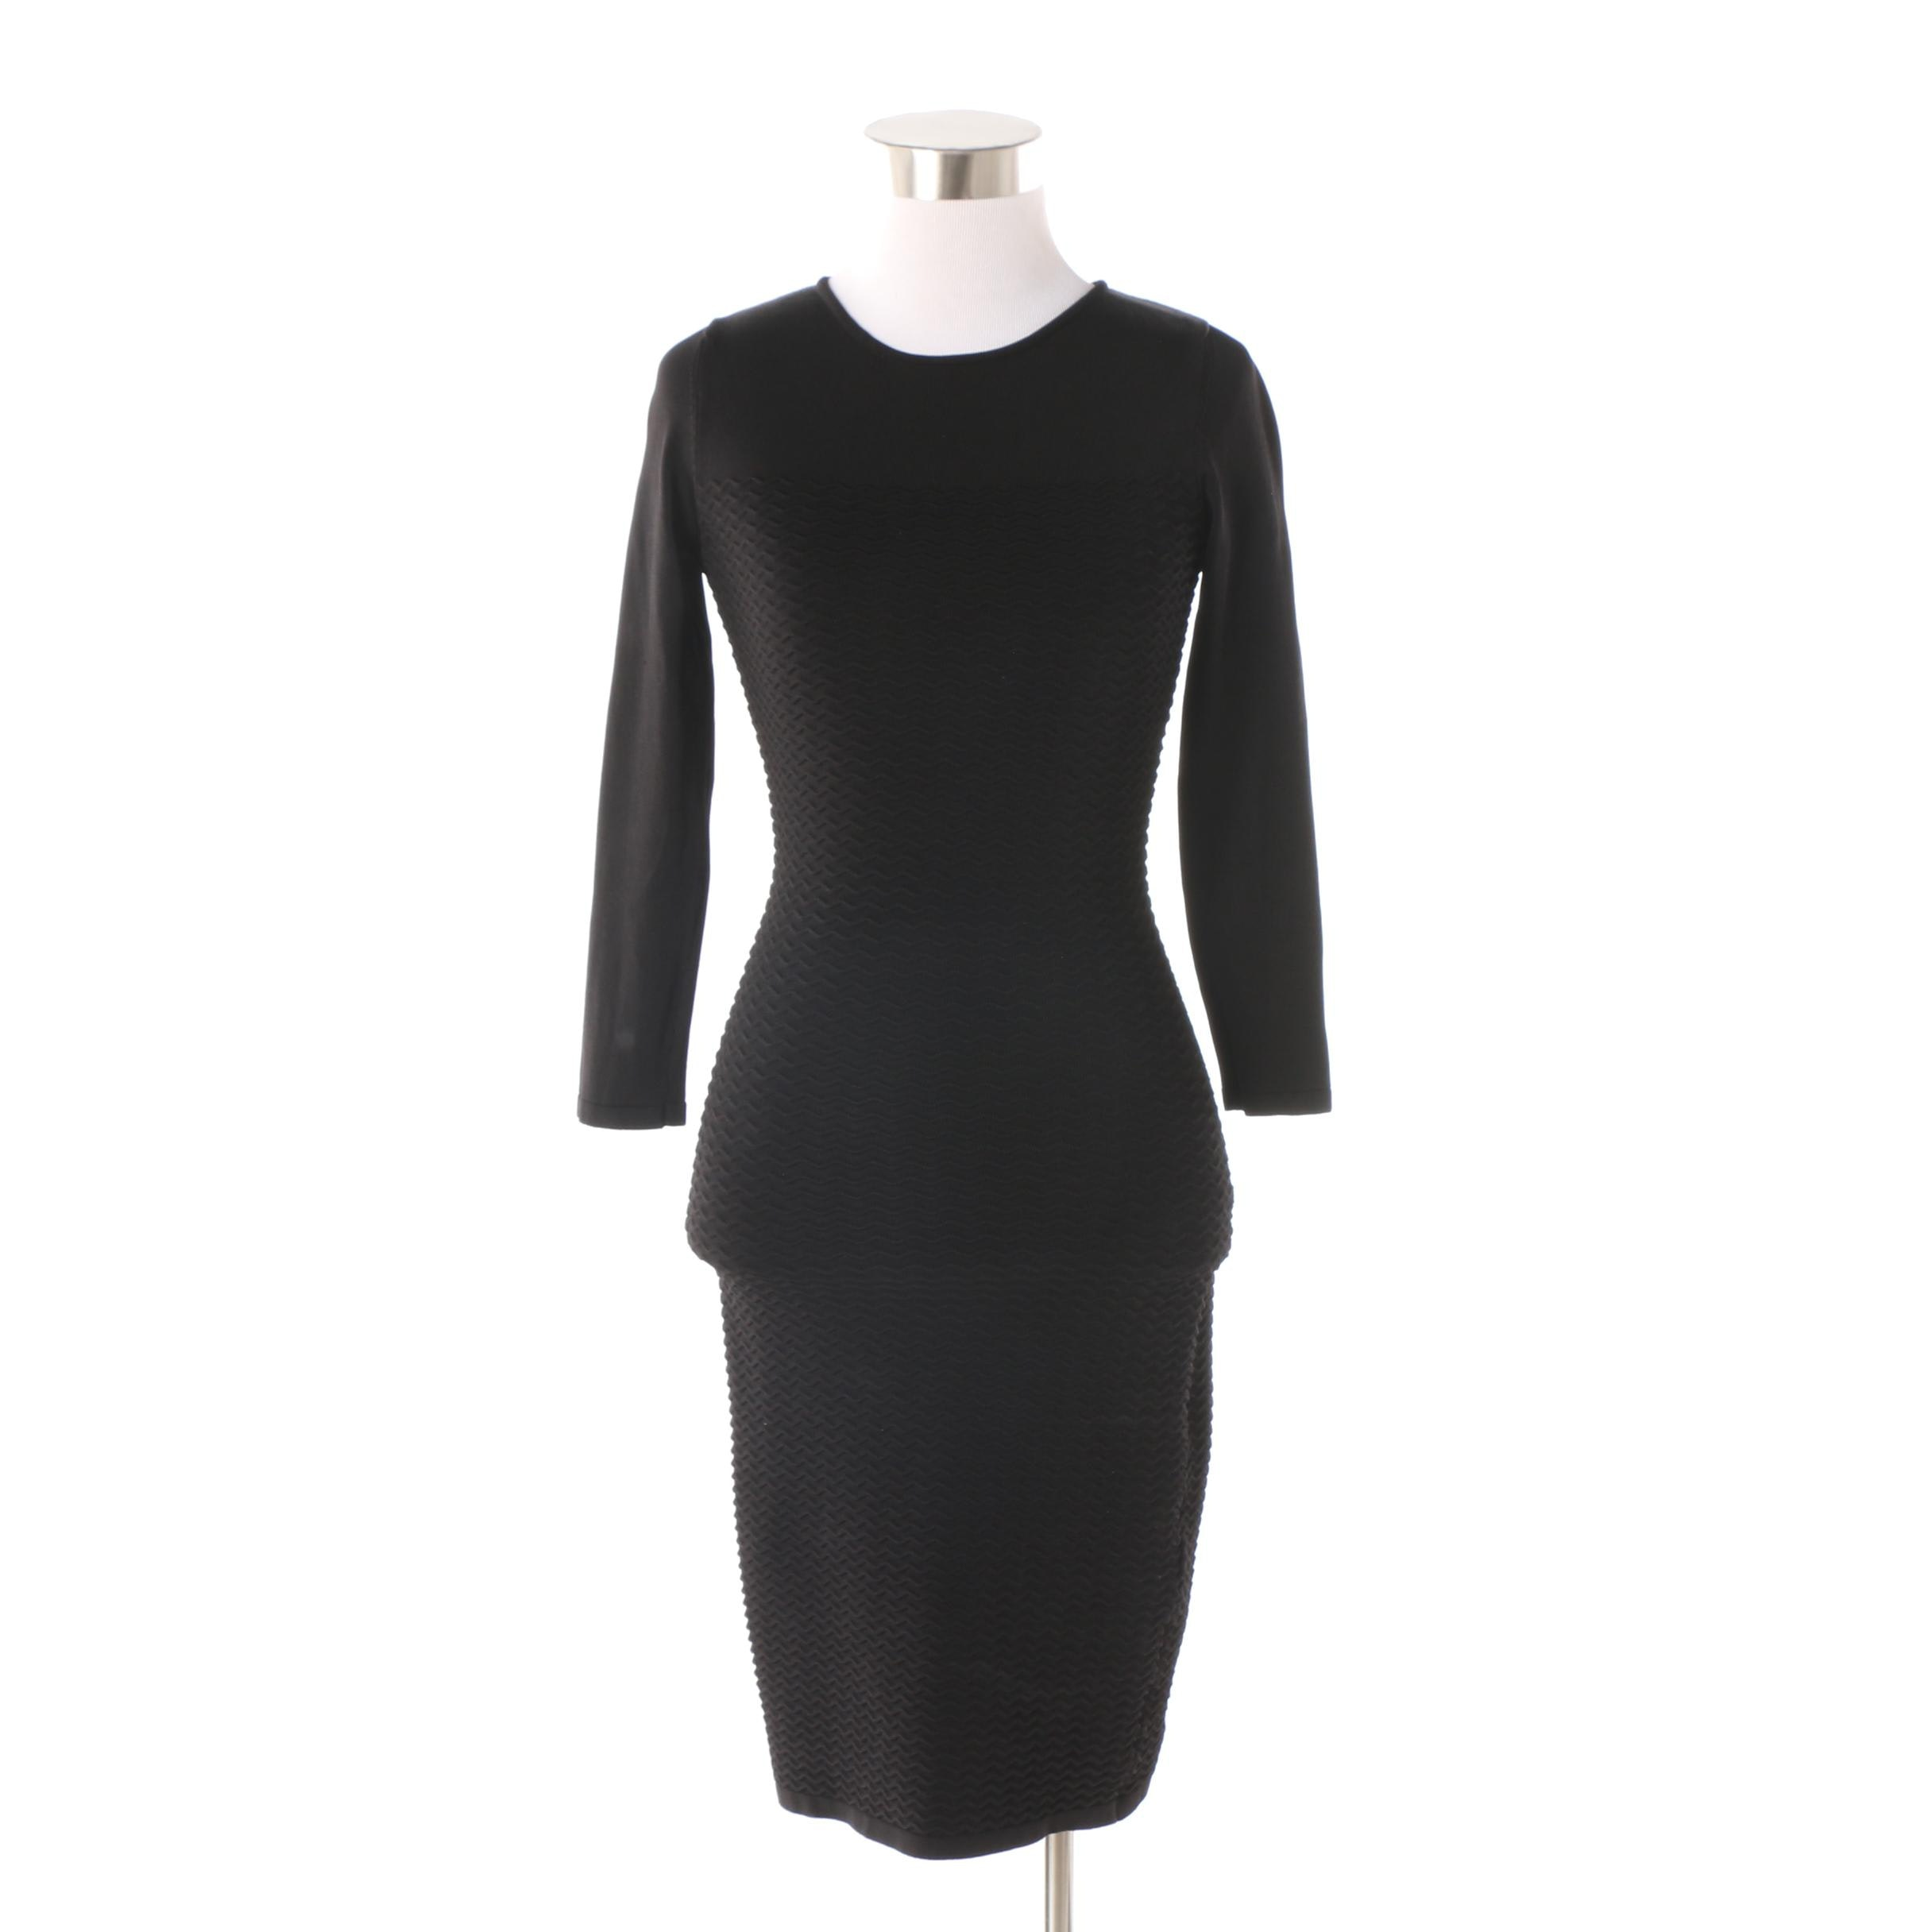 Cynthia Rowley Black Knit Bodycon Dress